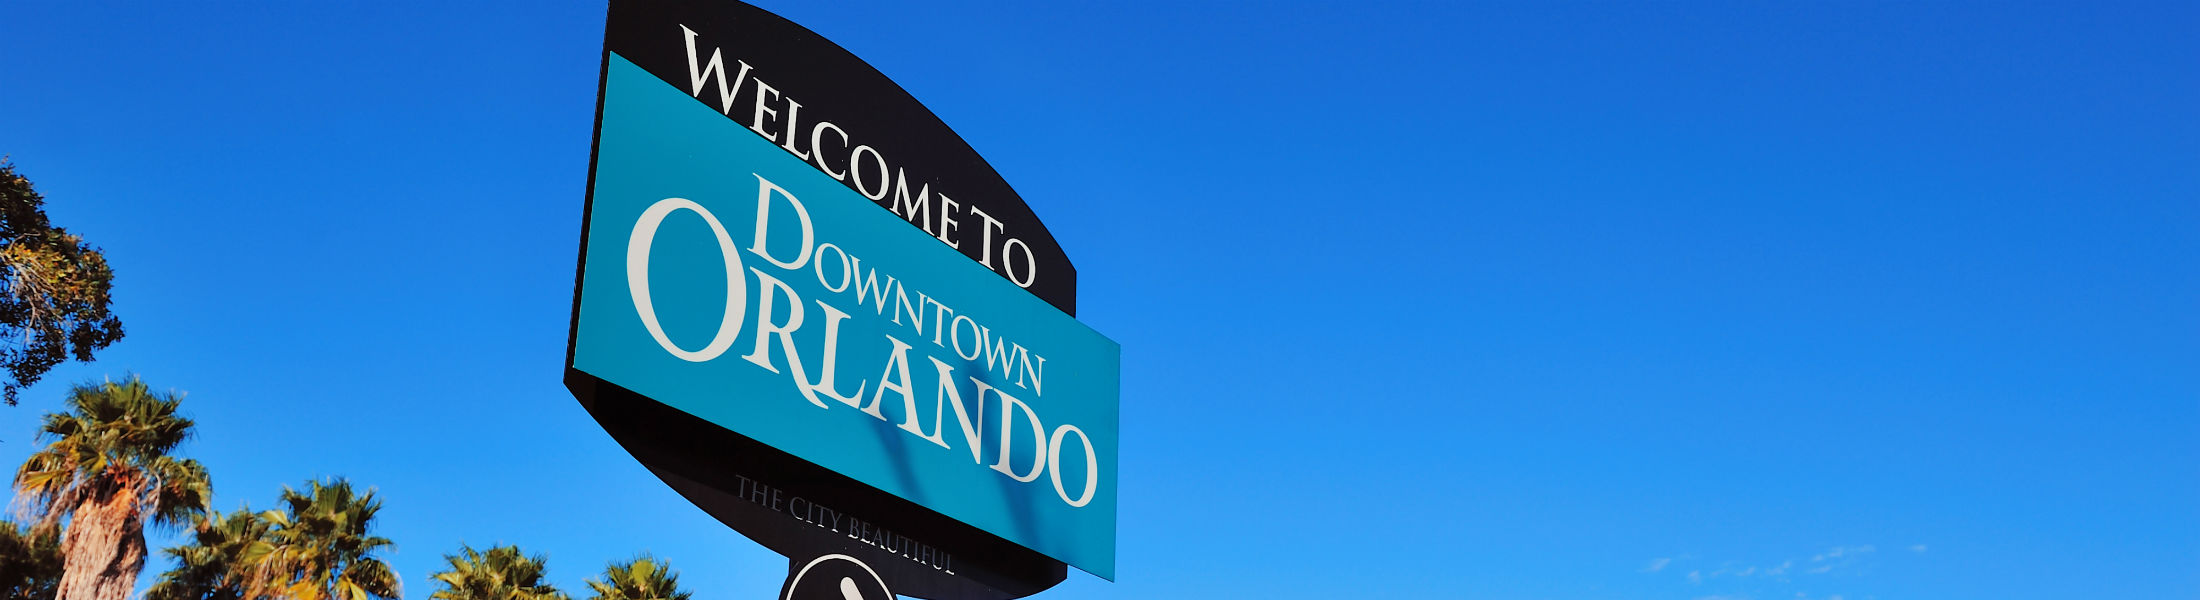 Orlando downtown welcome sign